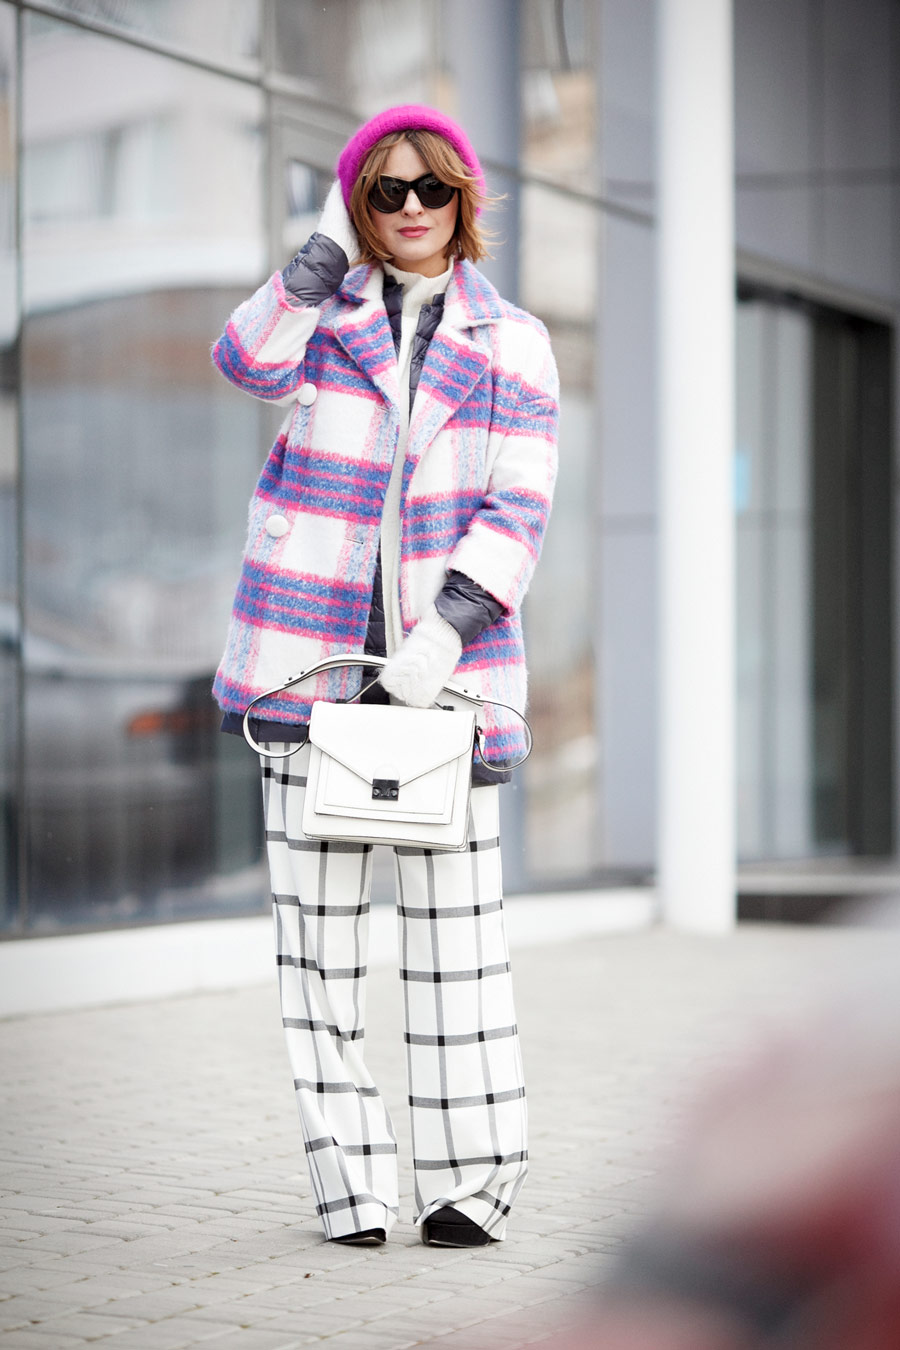 winter layers, winter layering ideas, best winter layering outfits, checkered coat, grid trousers, Ellena Galant Girl,